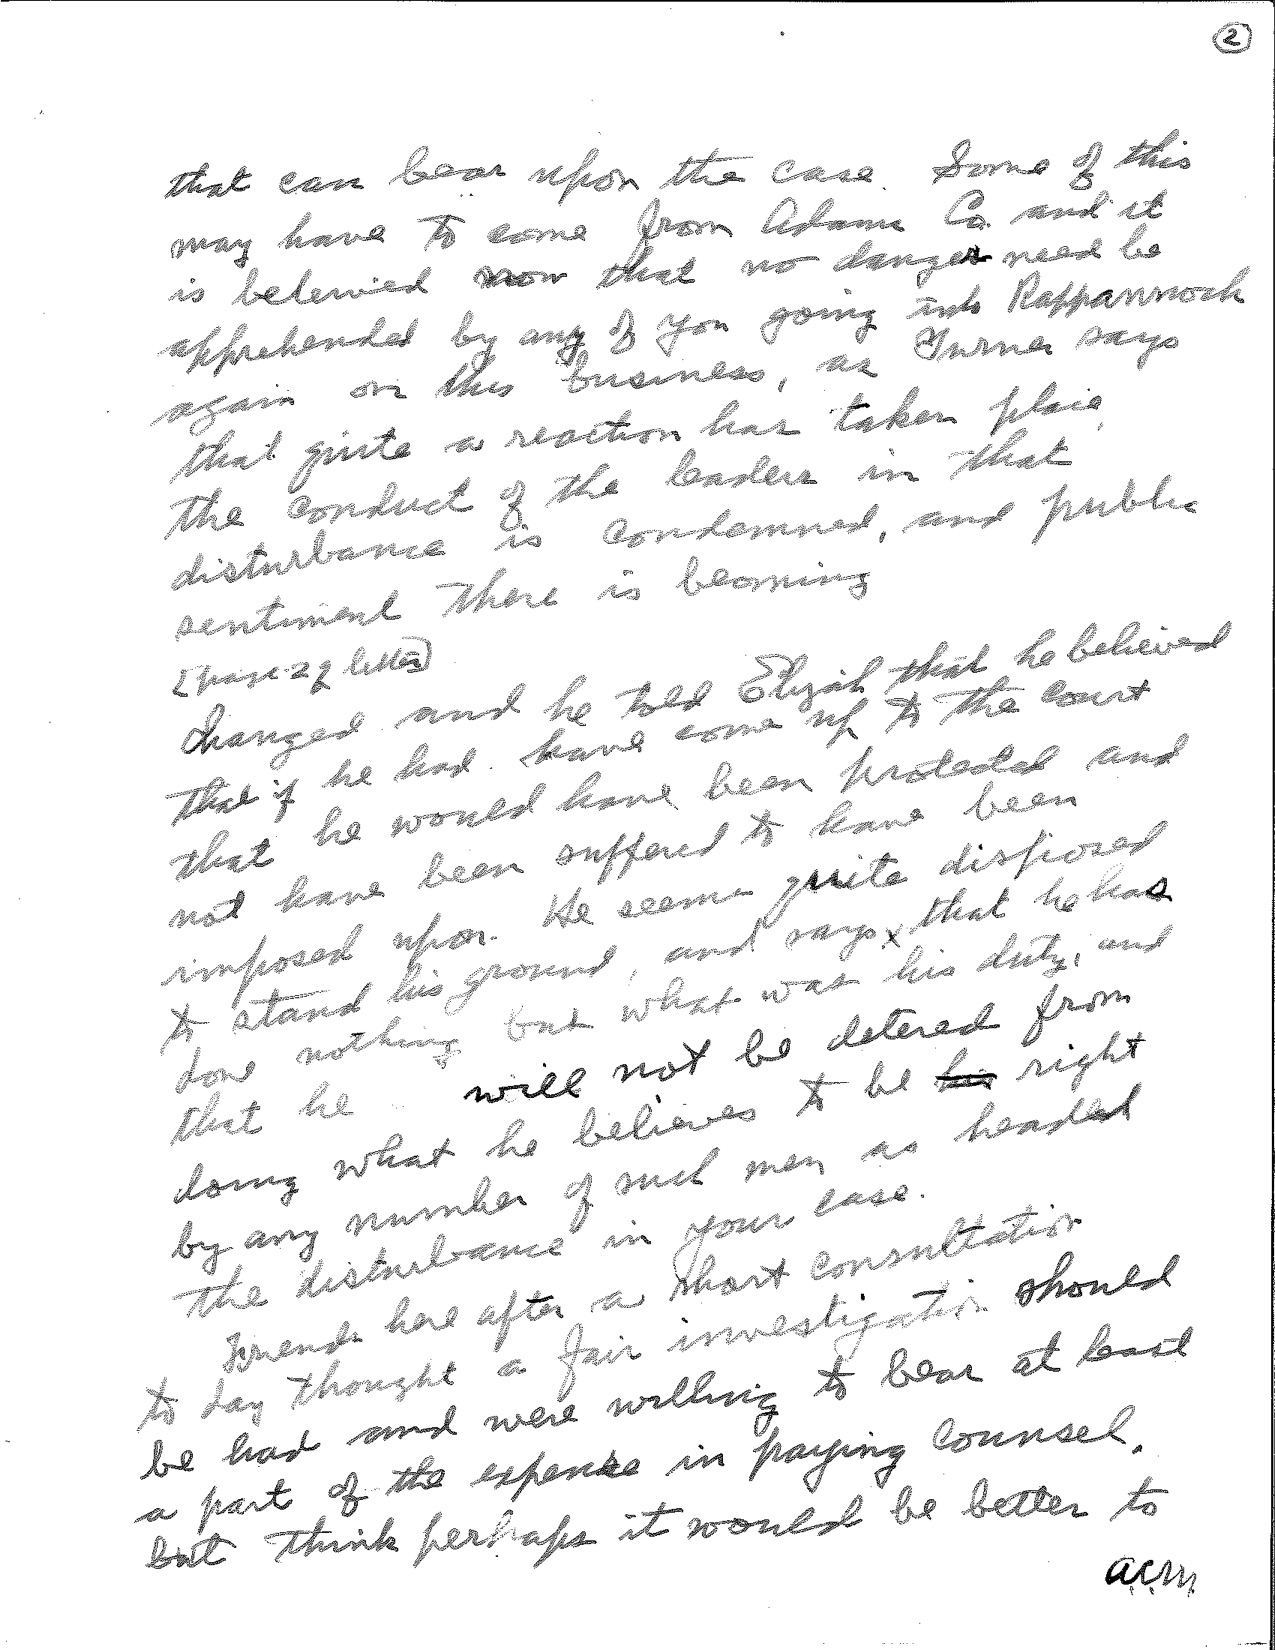 Yardley Taylor letter to Cyrus Greist page 2